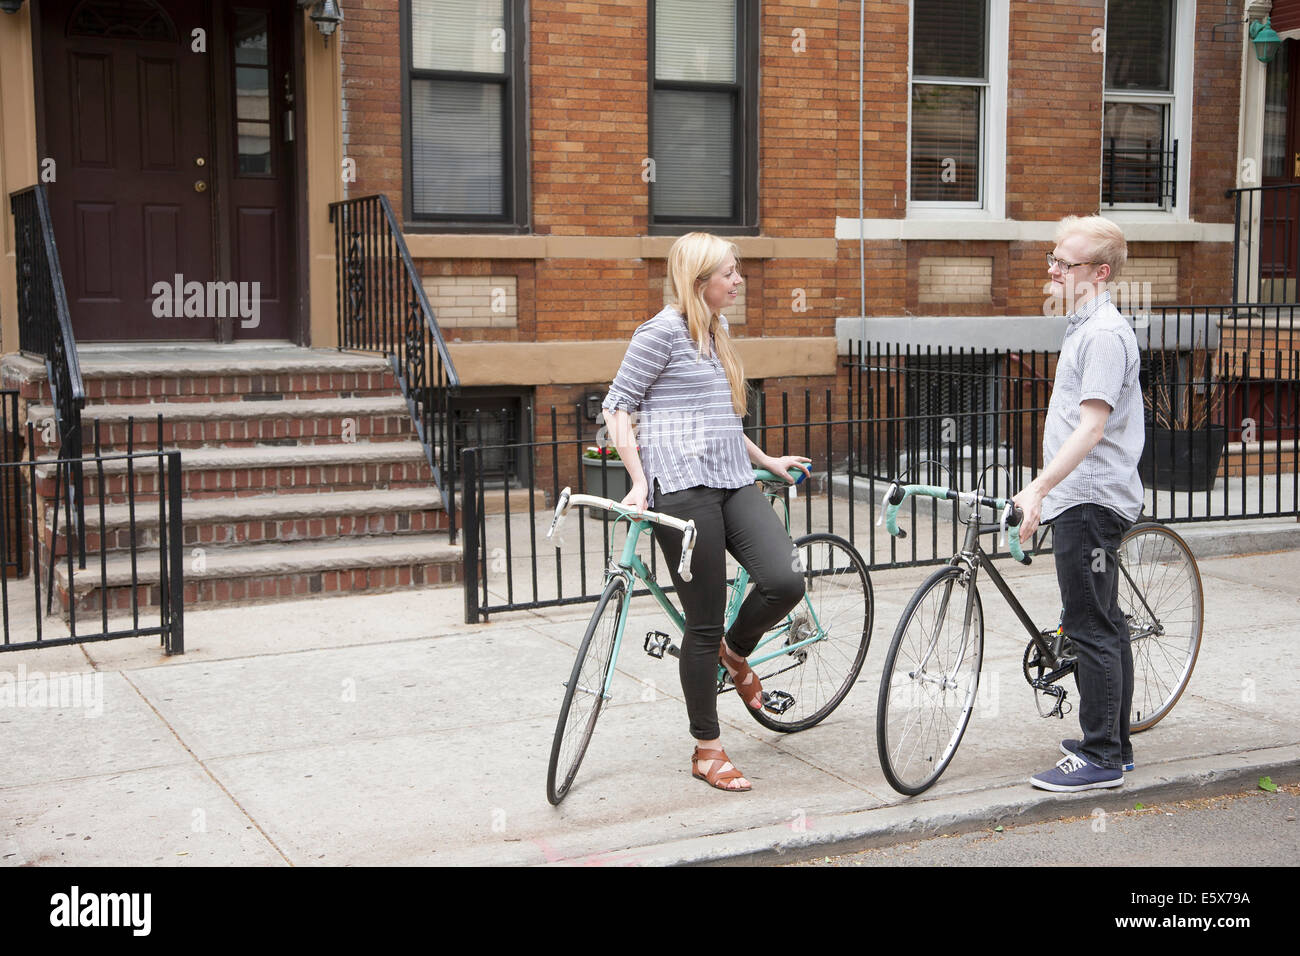 Young couple with bicycles chatting on street - Stock Image